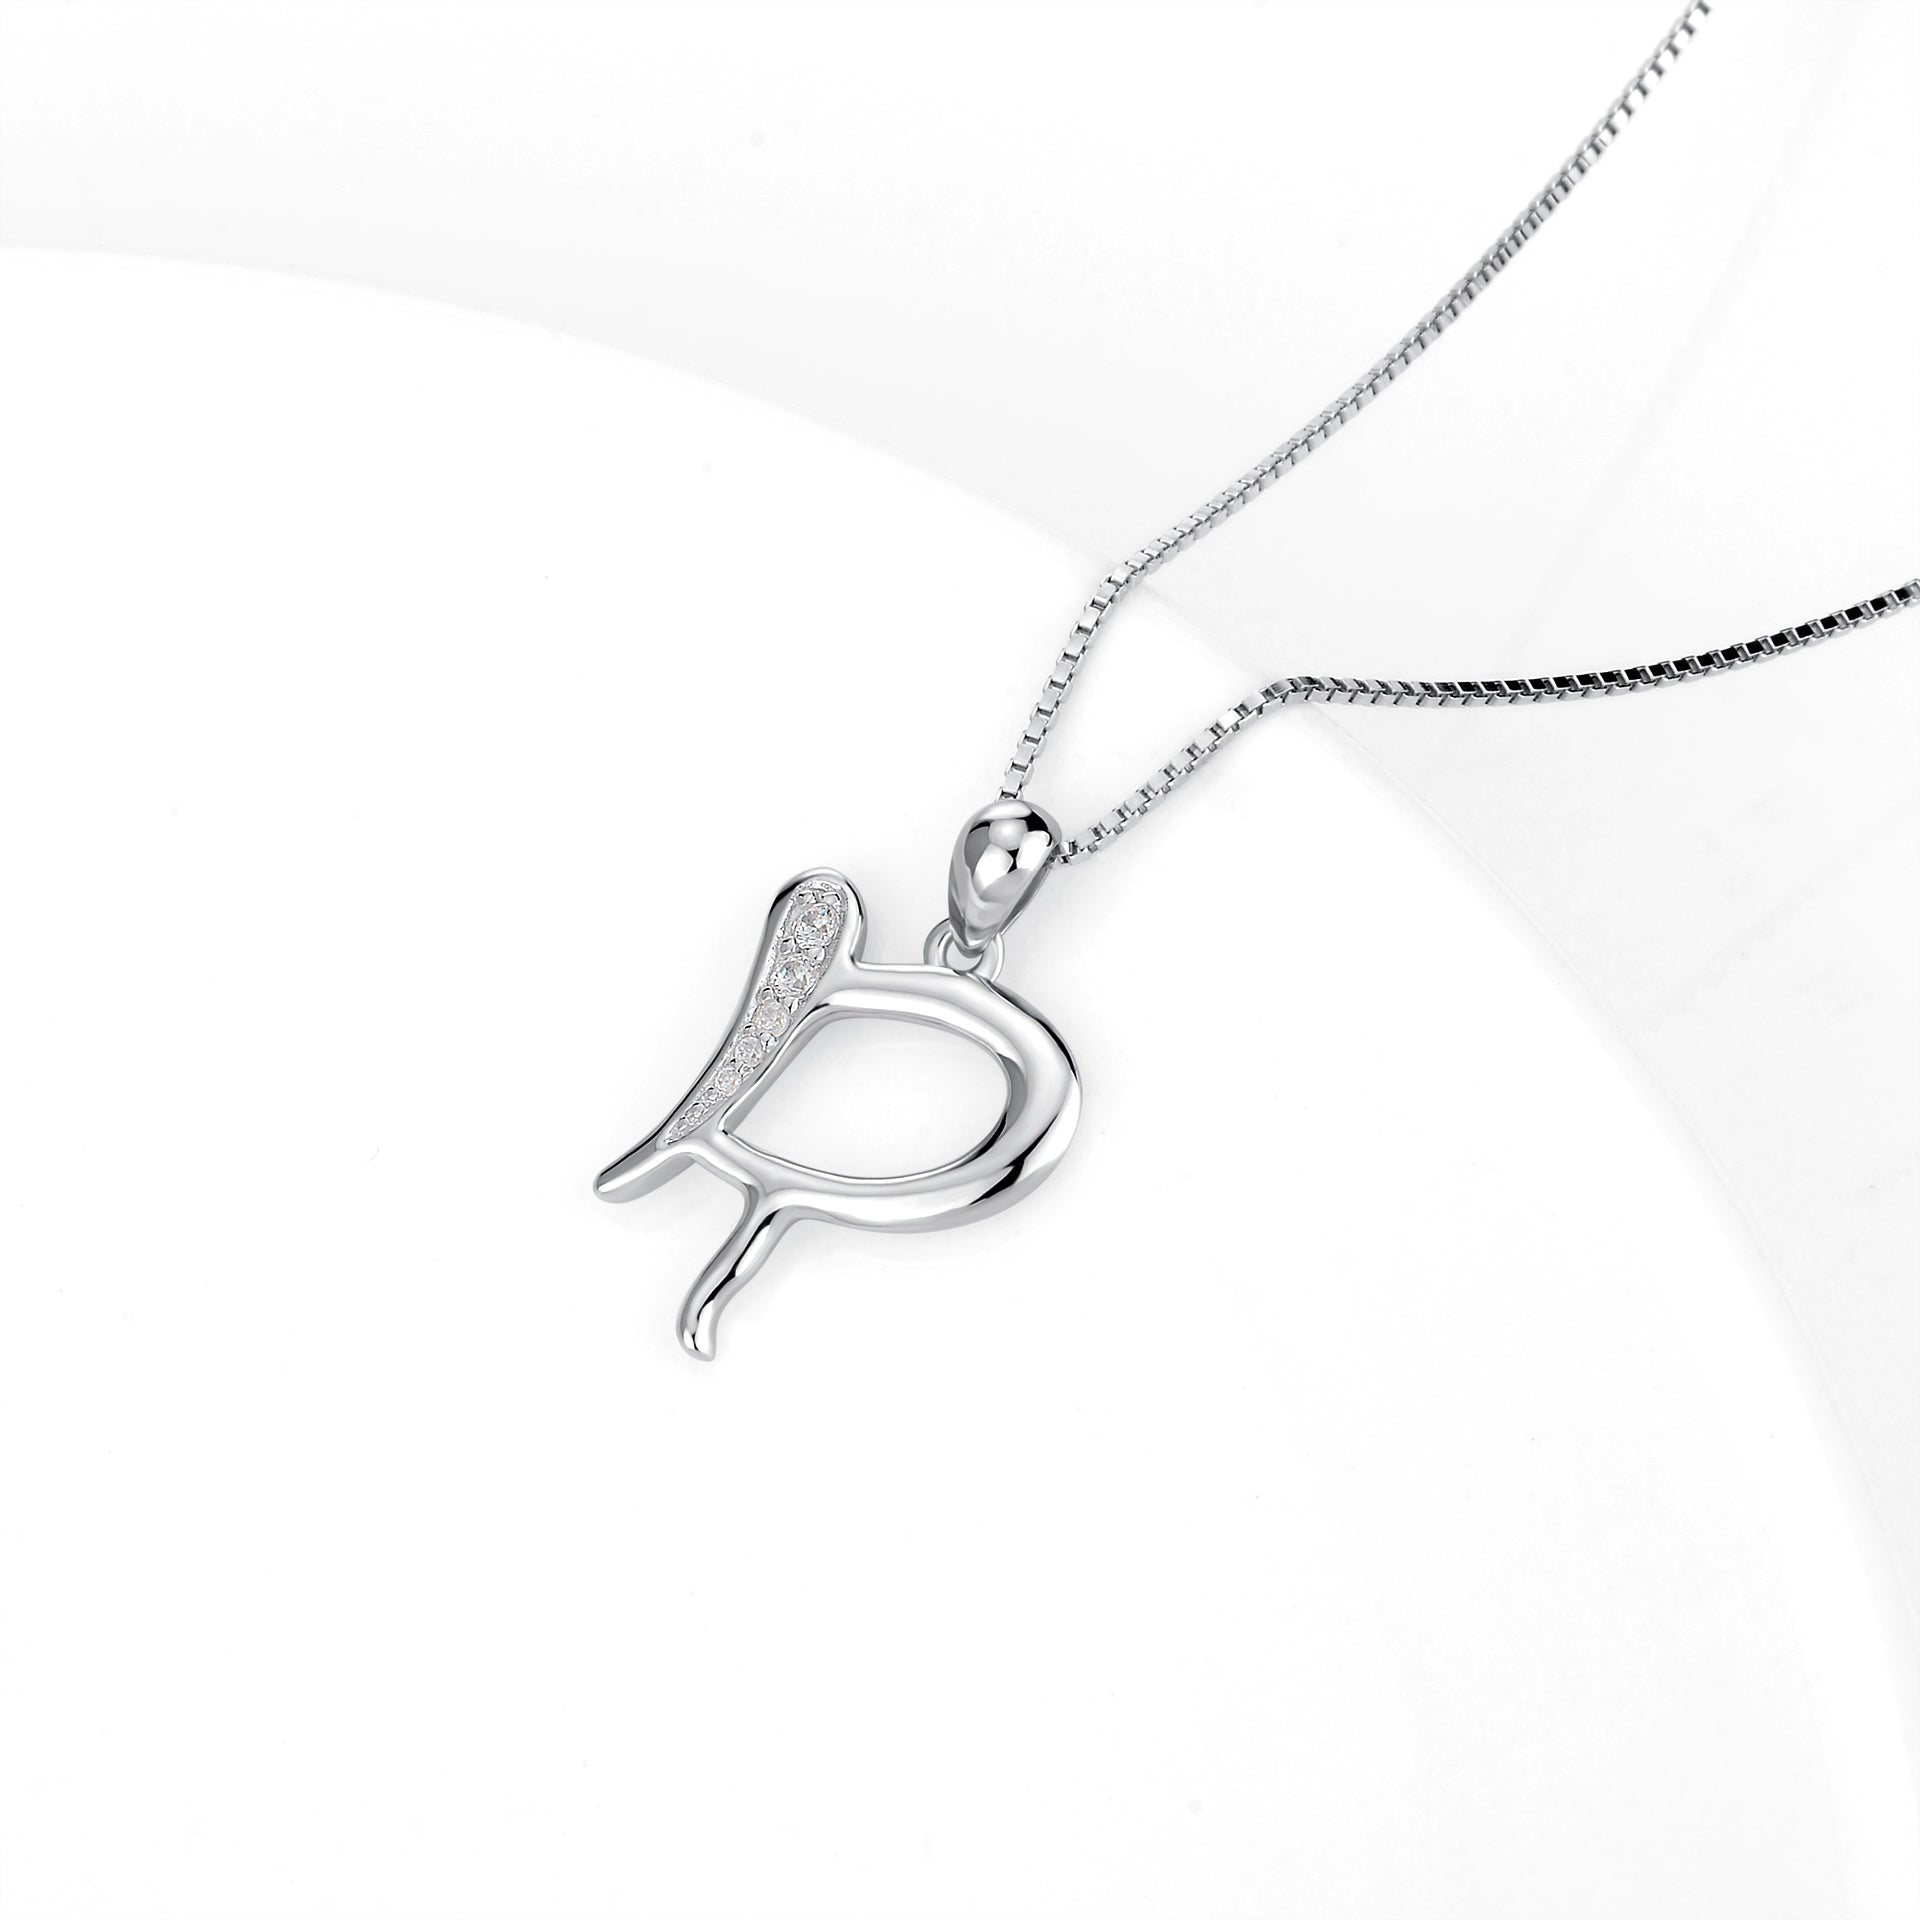 letter R pendant necklace real silver elegant jewelry necklace